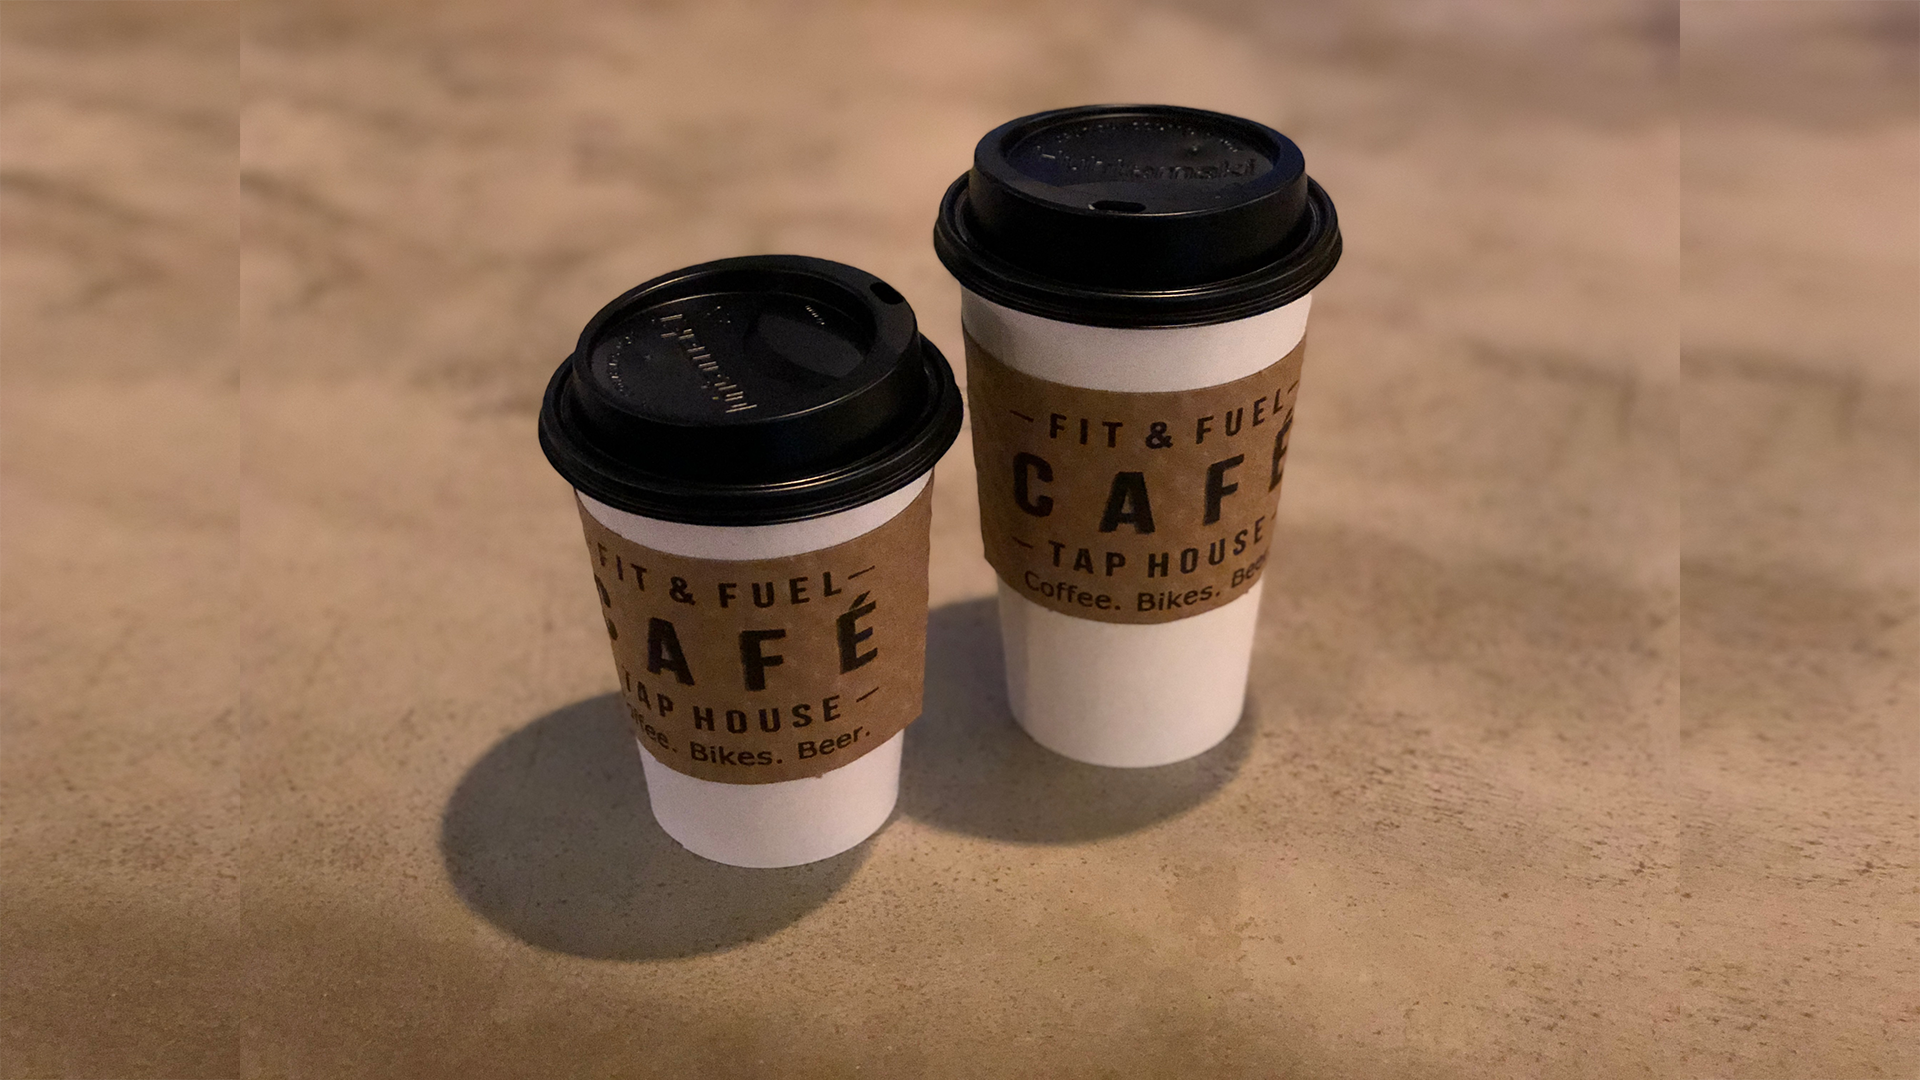 Looking for the Best Coffee in Naples?